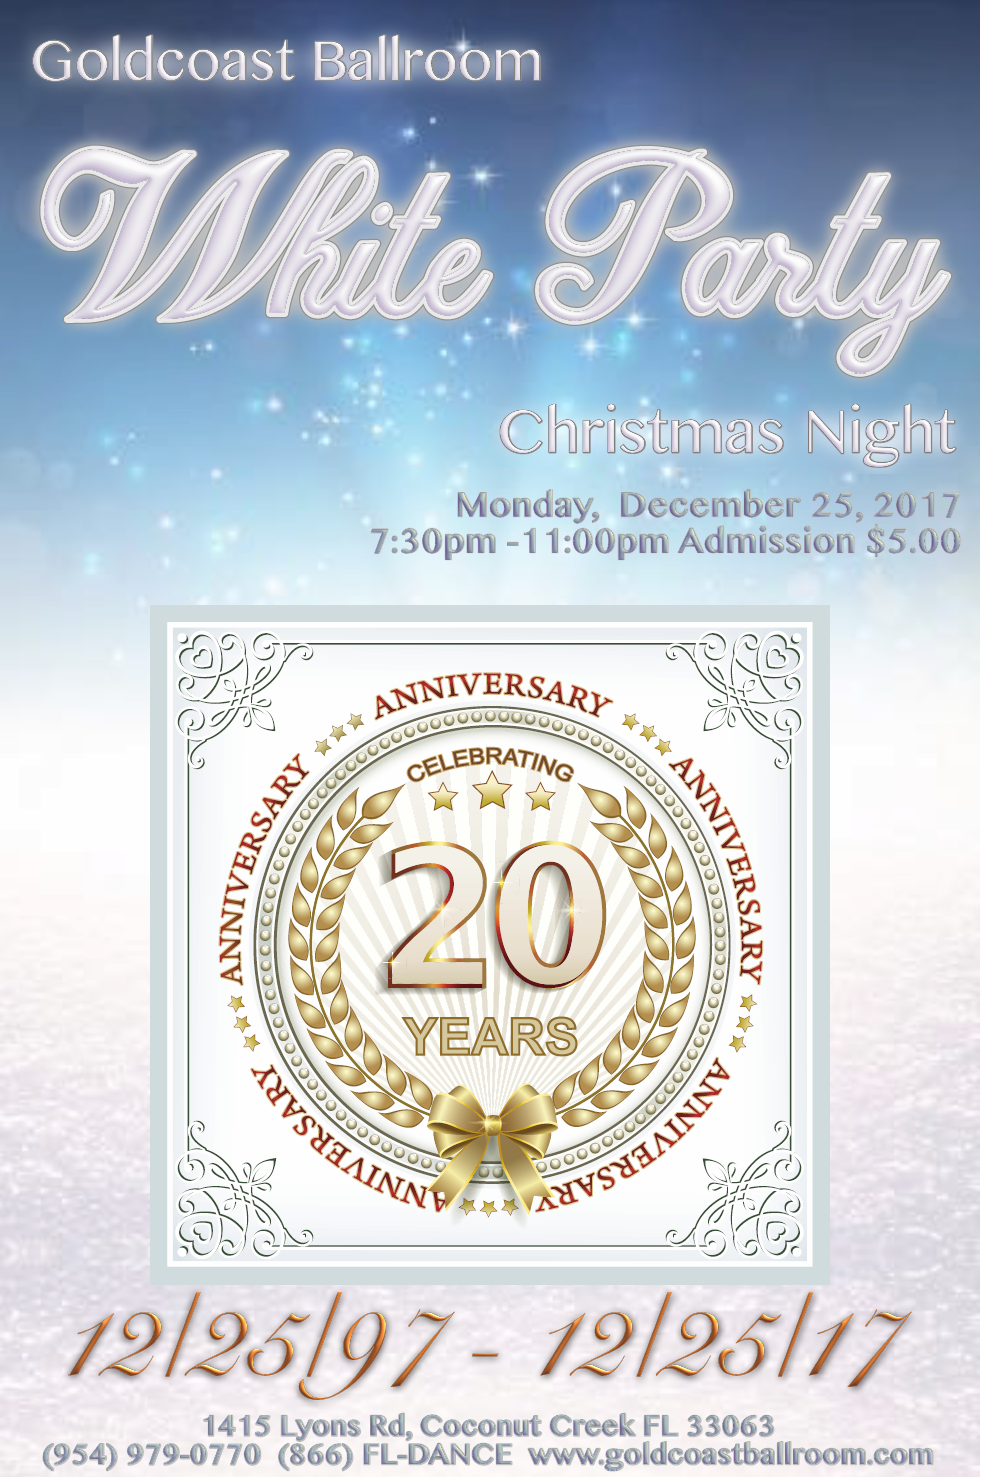 Goldcoast Ballroom 20th Anniversary White Party! - December 25, 2017